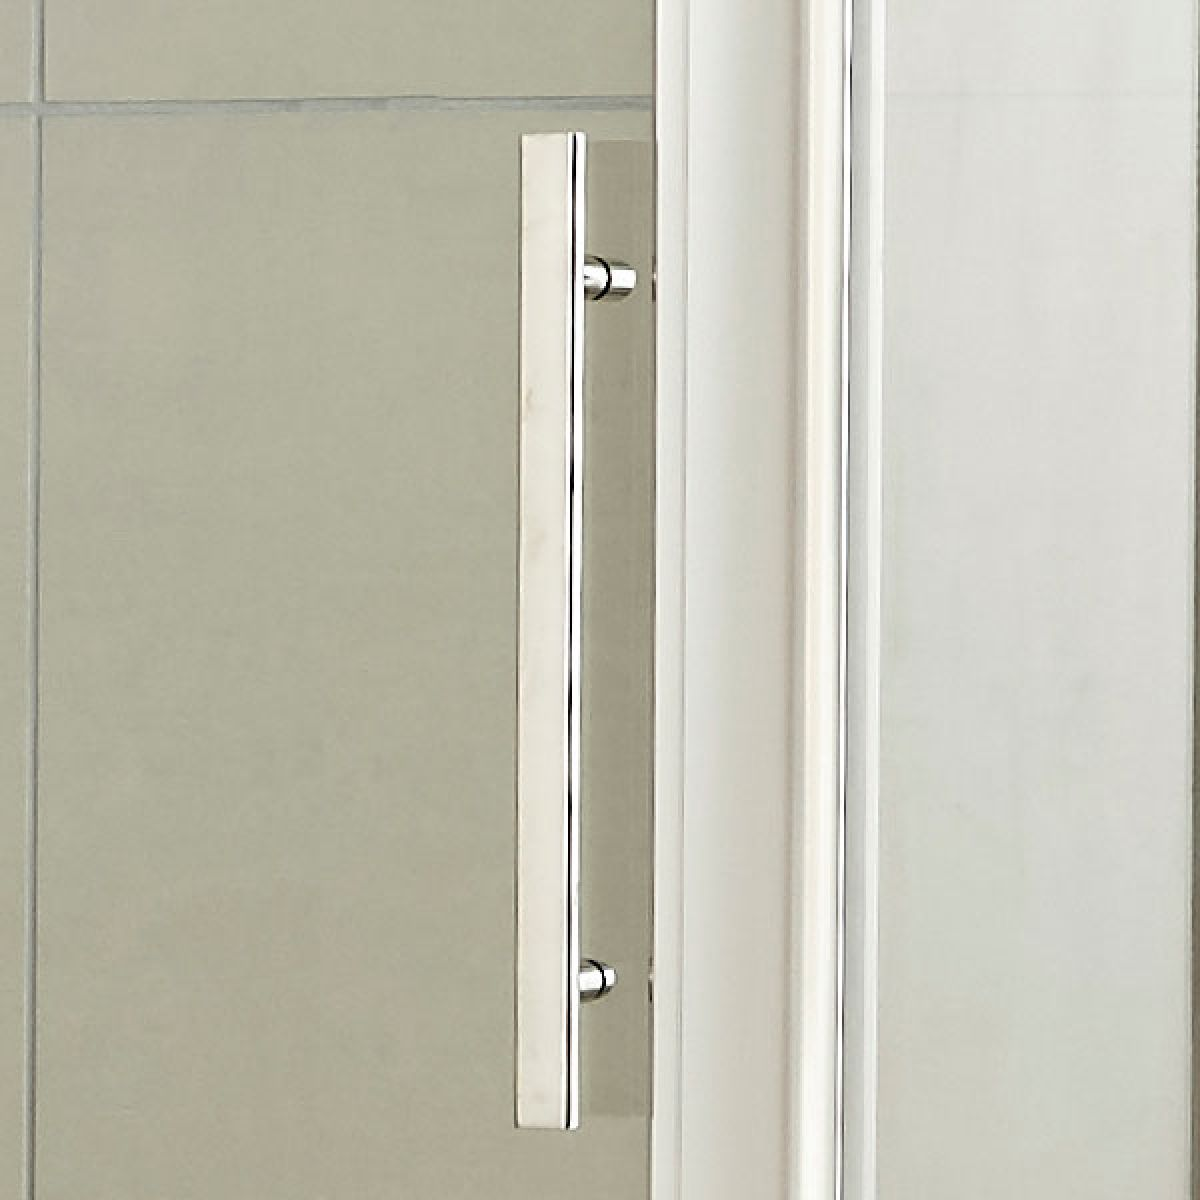 Hudson Reed Apex Single Sliding Door Shower Door with Optional Side Panel - Handle